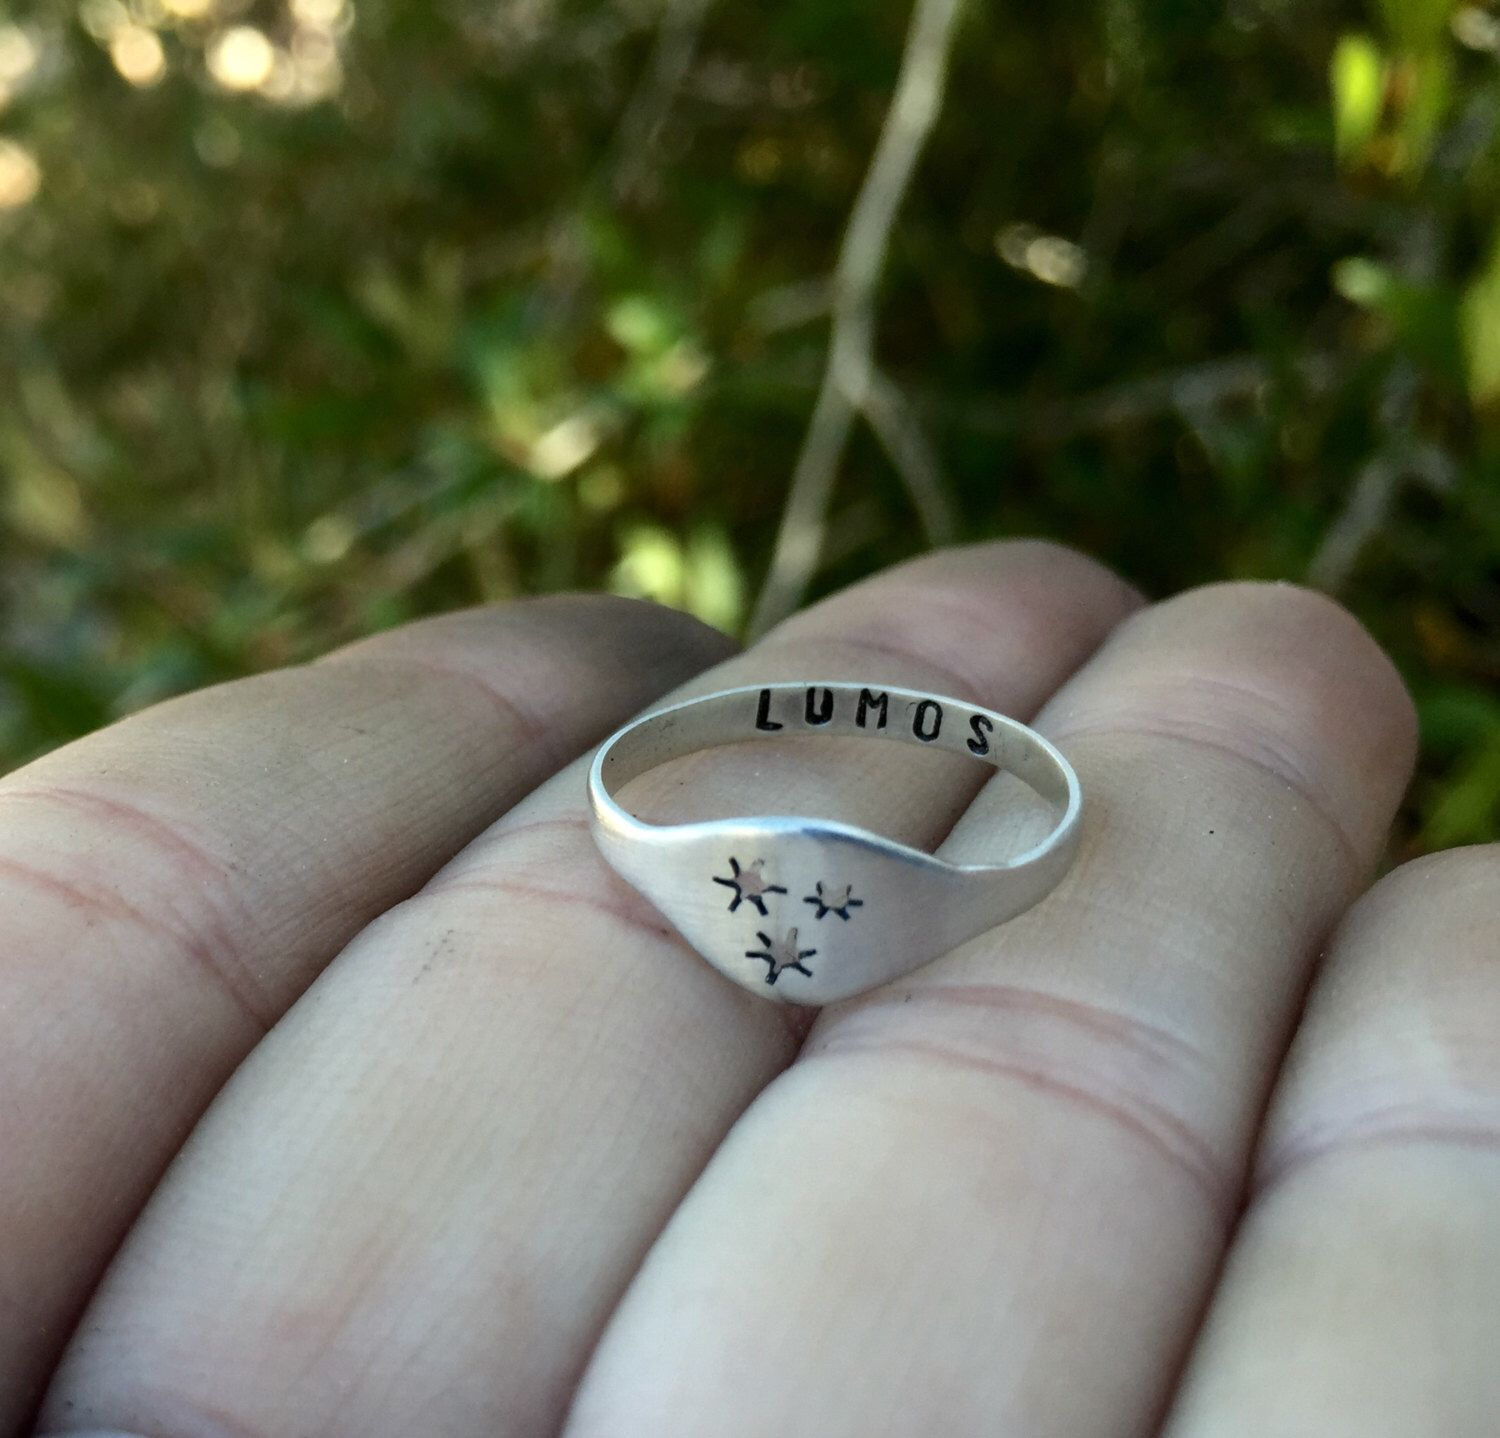 Harry Potter Stars Ring Custom Hand Stamped Spell Inside Sterling Silver Harry Potter Jewelry By Lucksmithfindin Harry Potter Jewelry Star Ring Rings